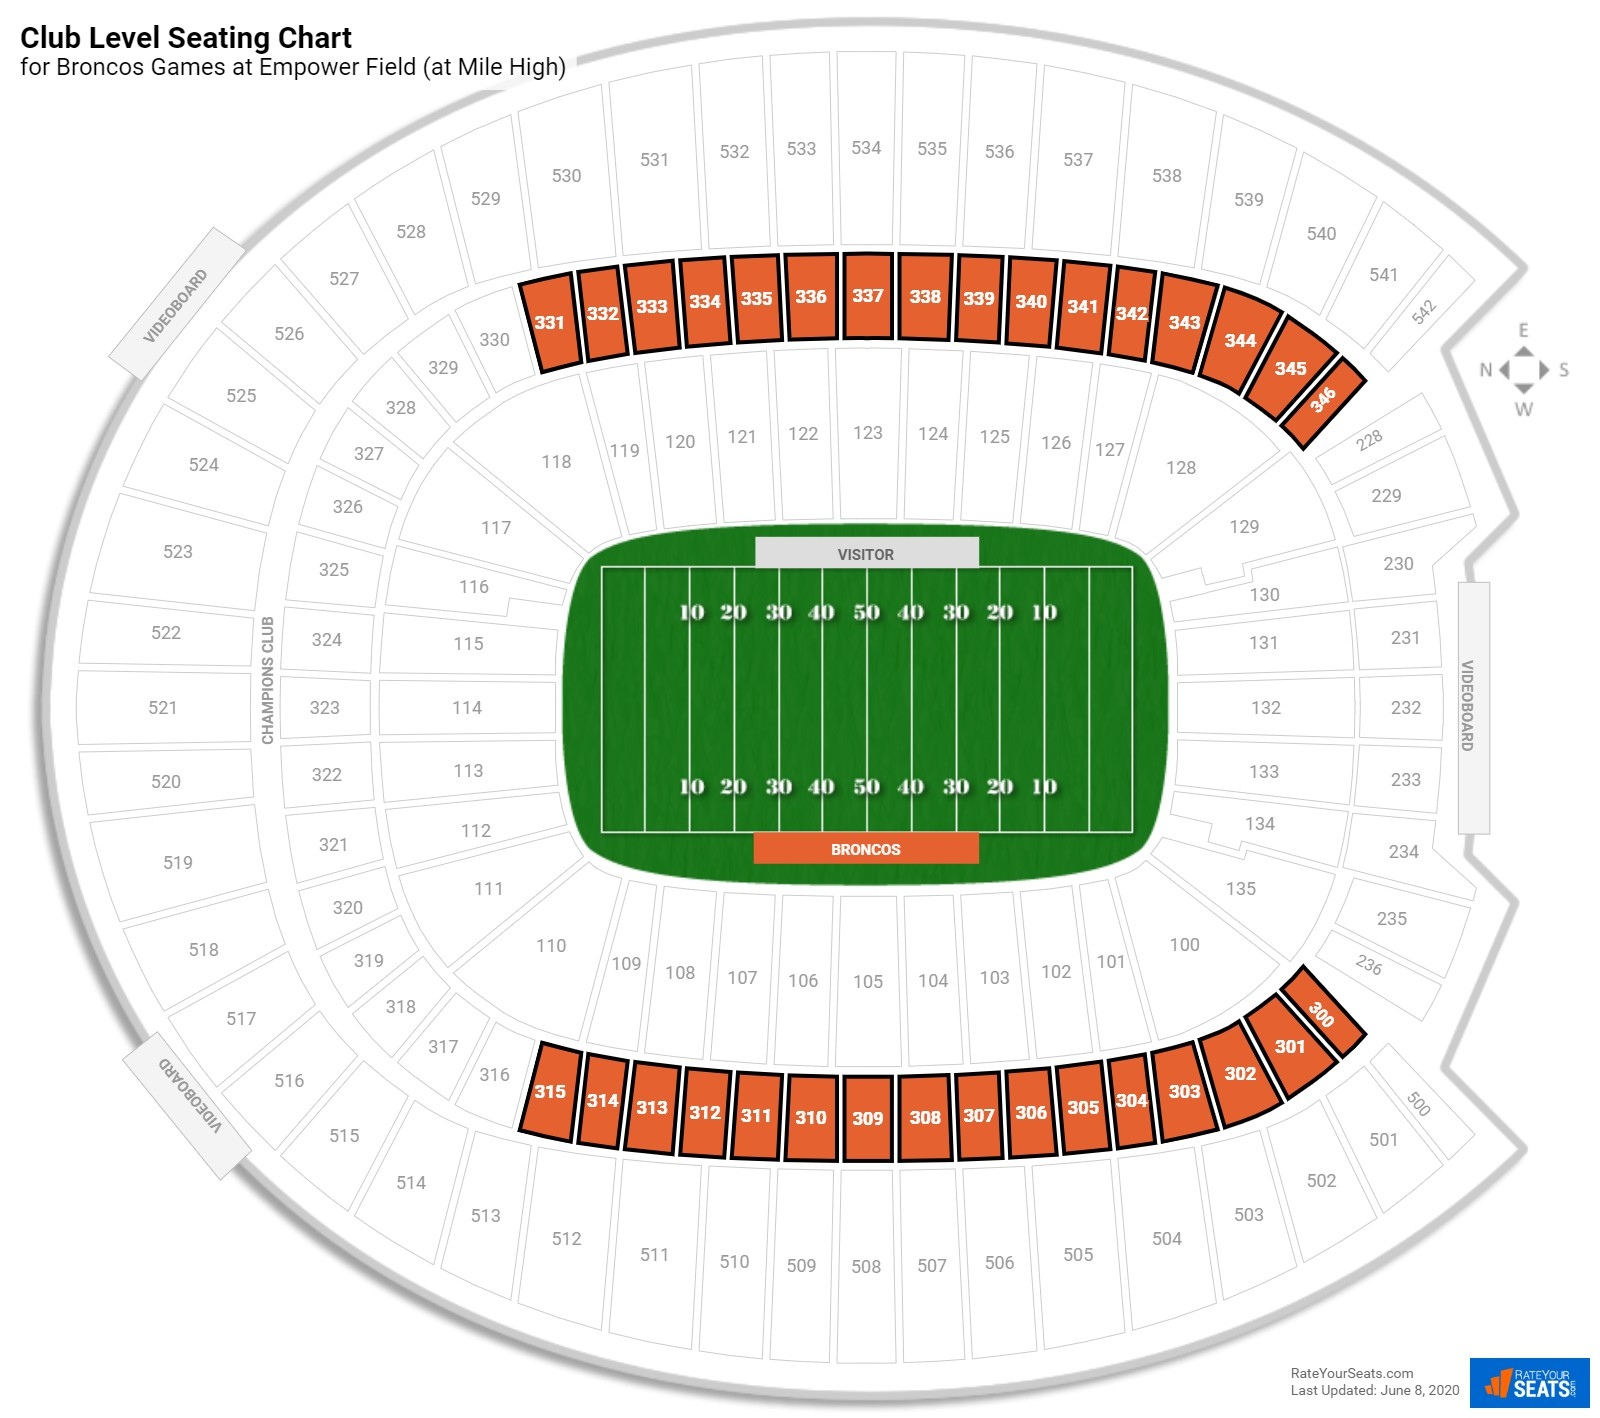 Sports Authority Field Club Level seating chart